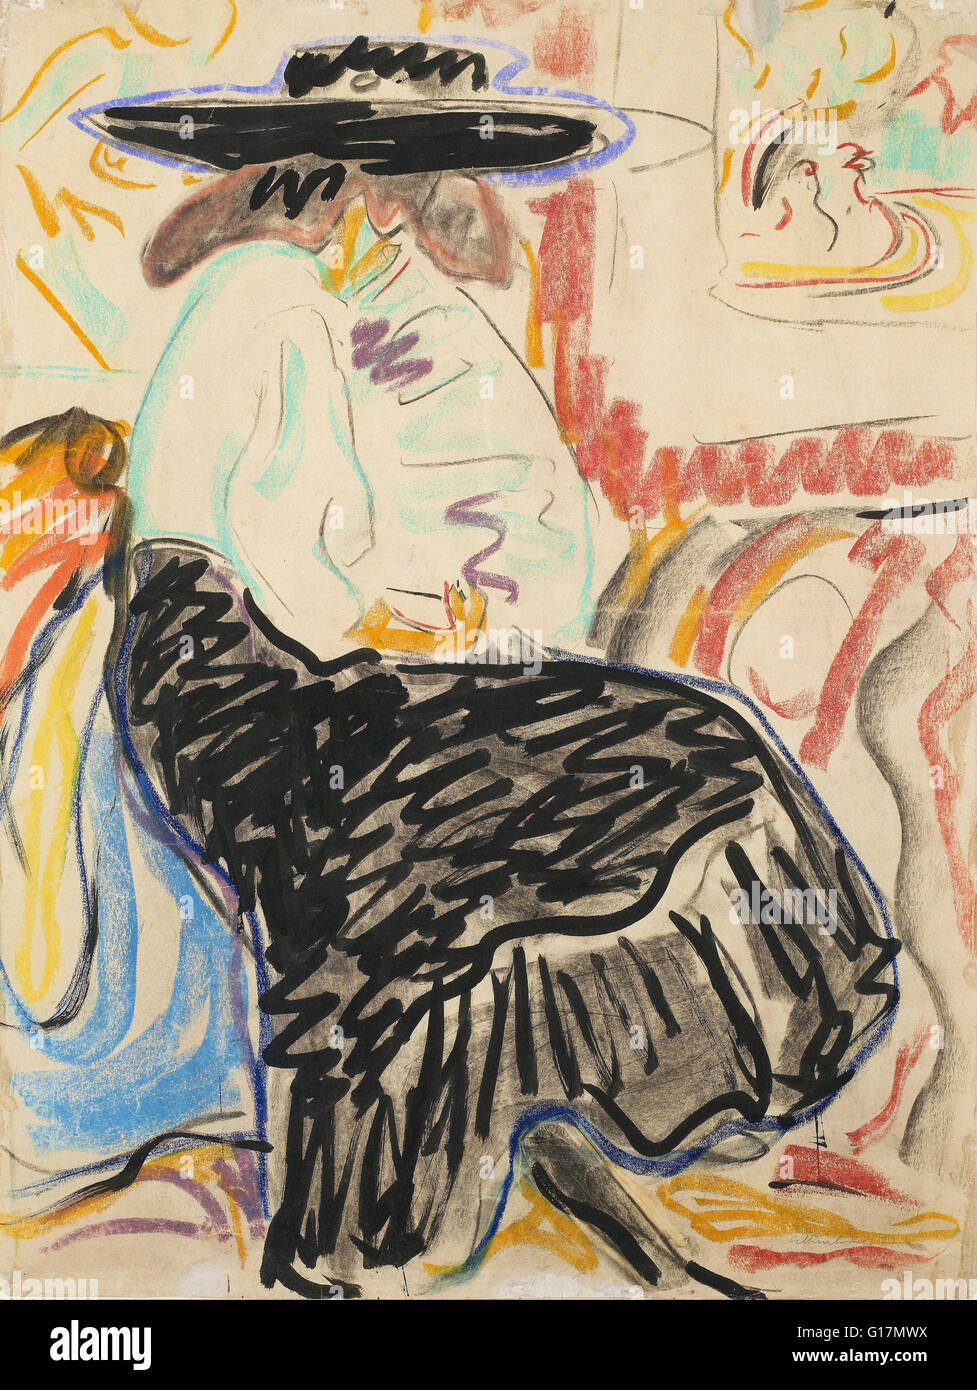 Ernst Ludwig Kirchner - Seated Woman in the Studio - Minneapolis Institute of Art - Stock Image